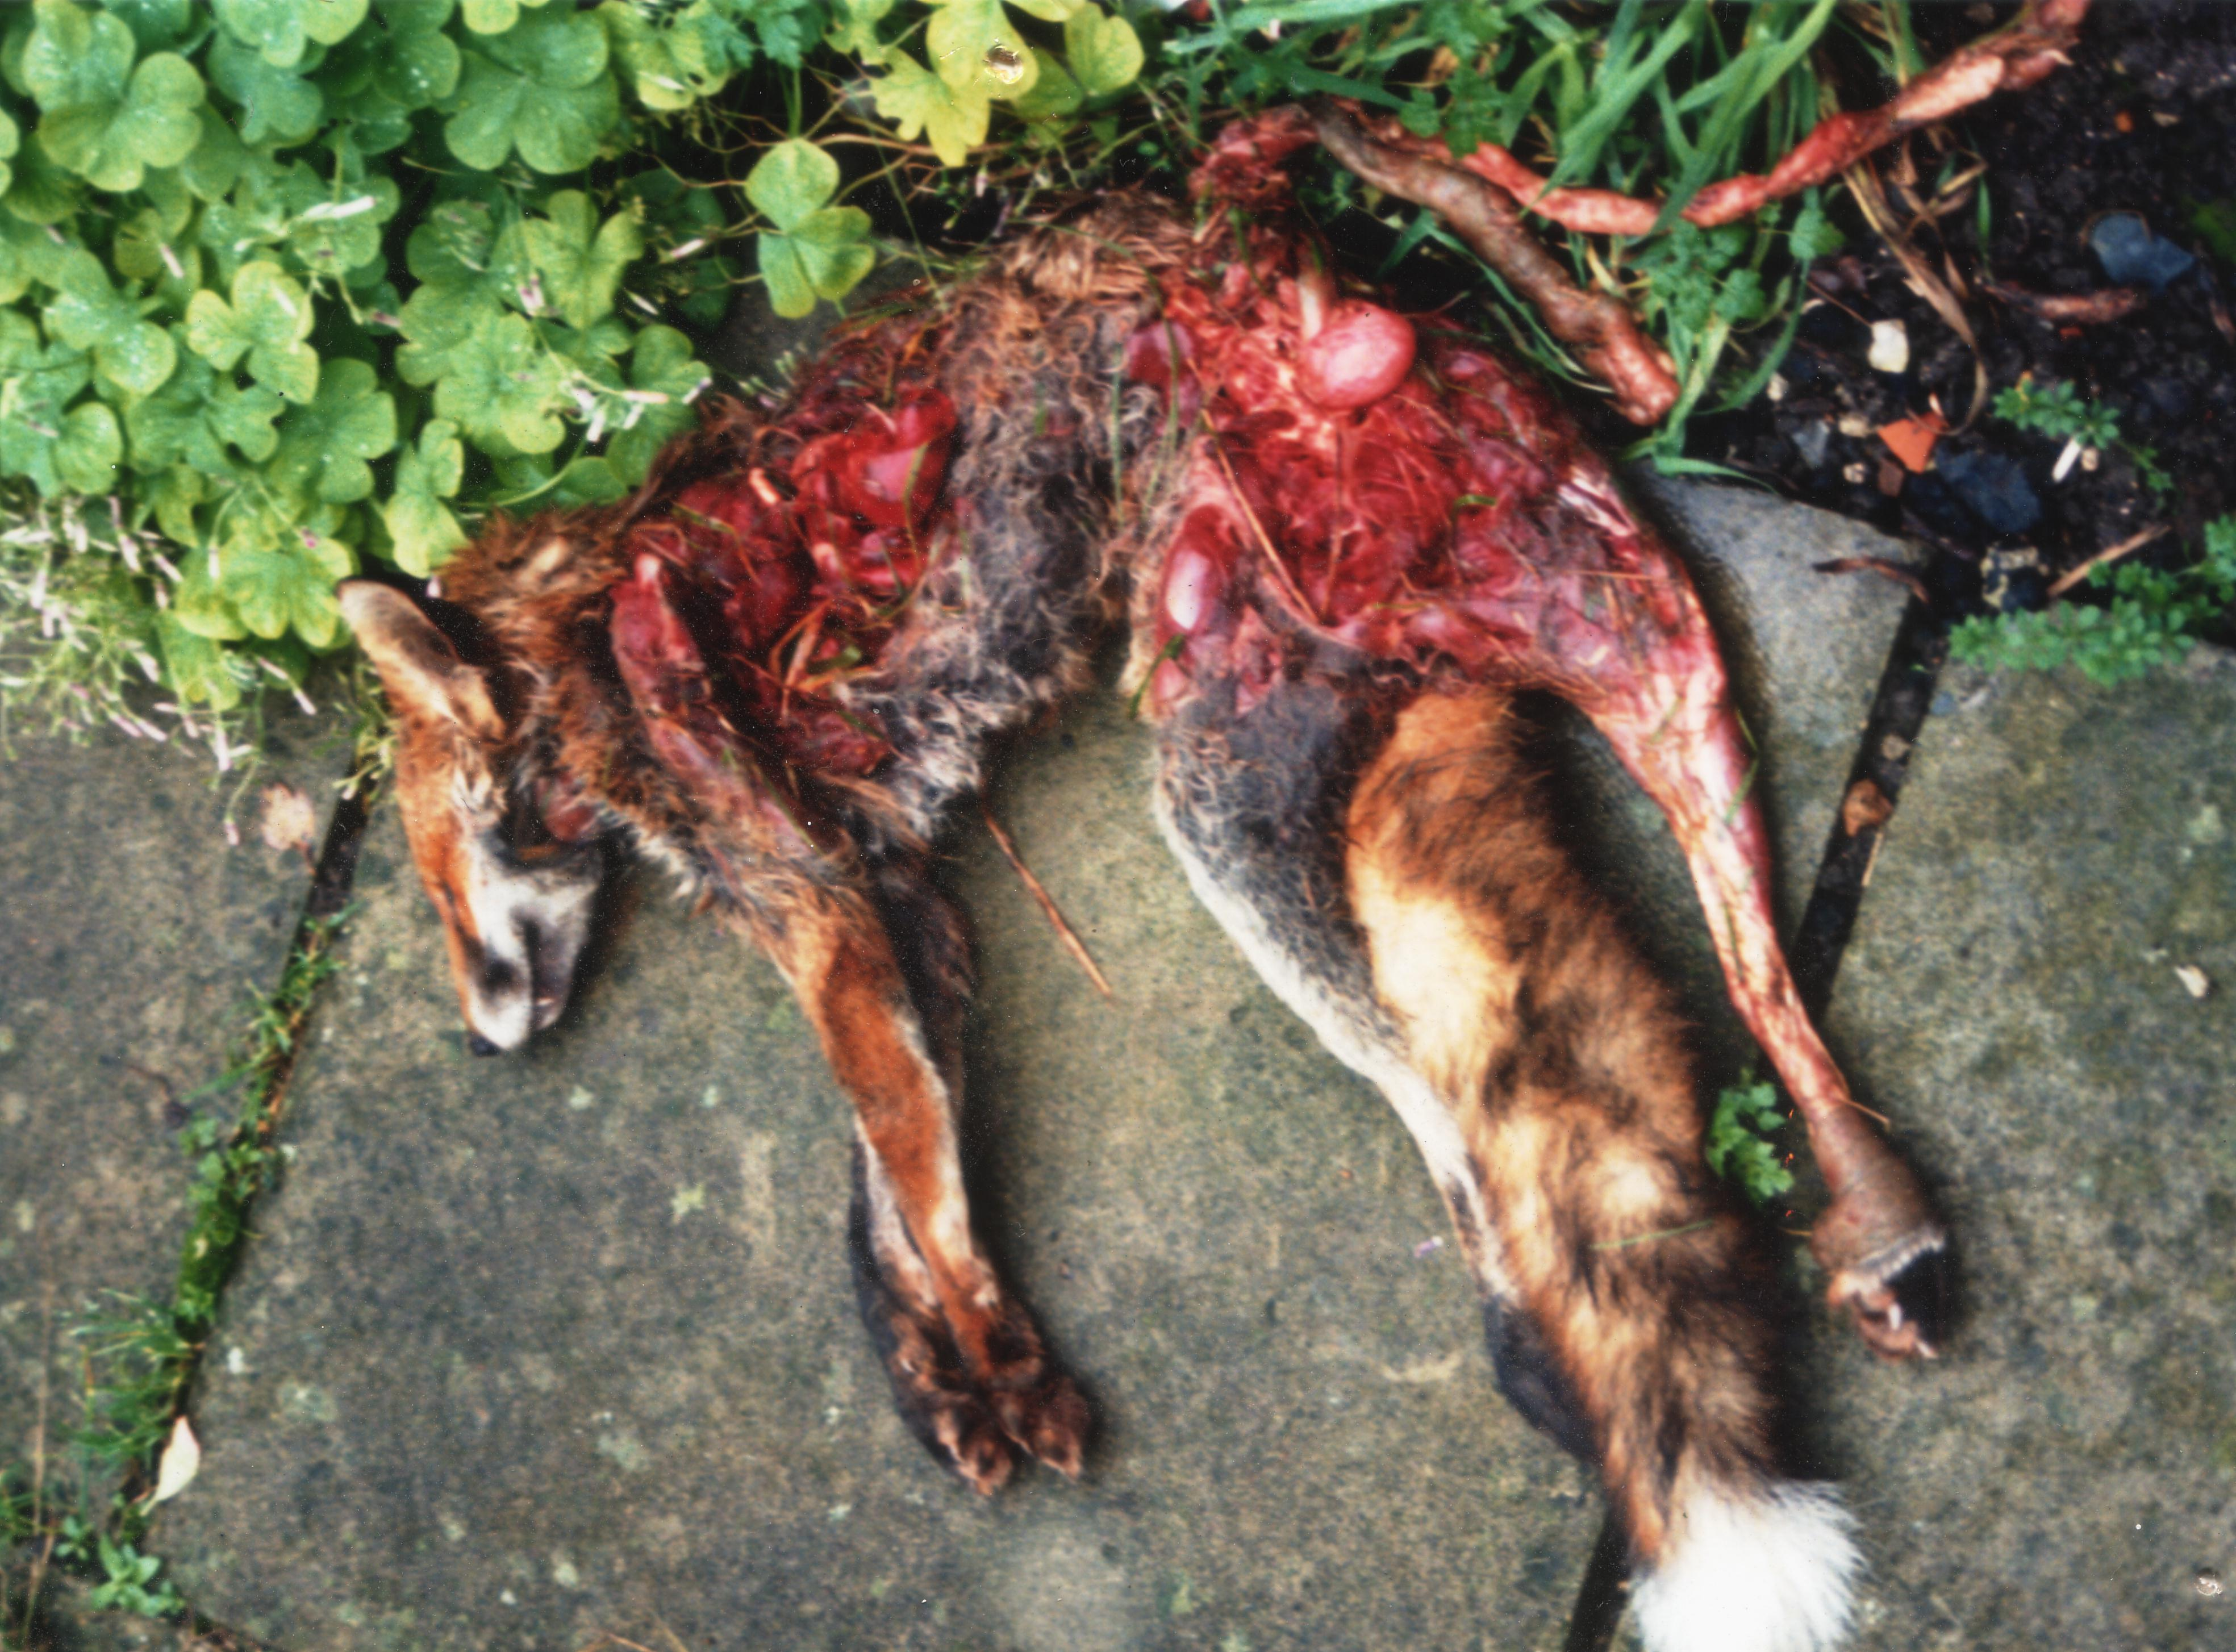 Voting conservative at the 2010 election will bring this animal abuse